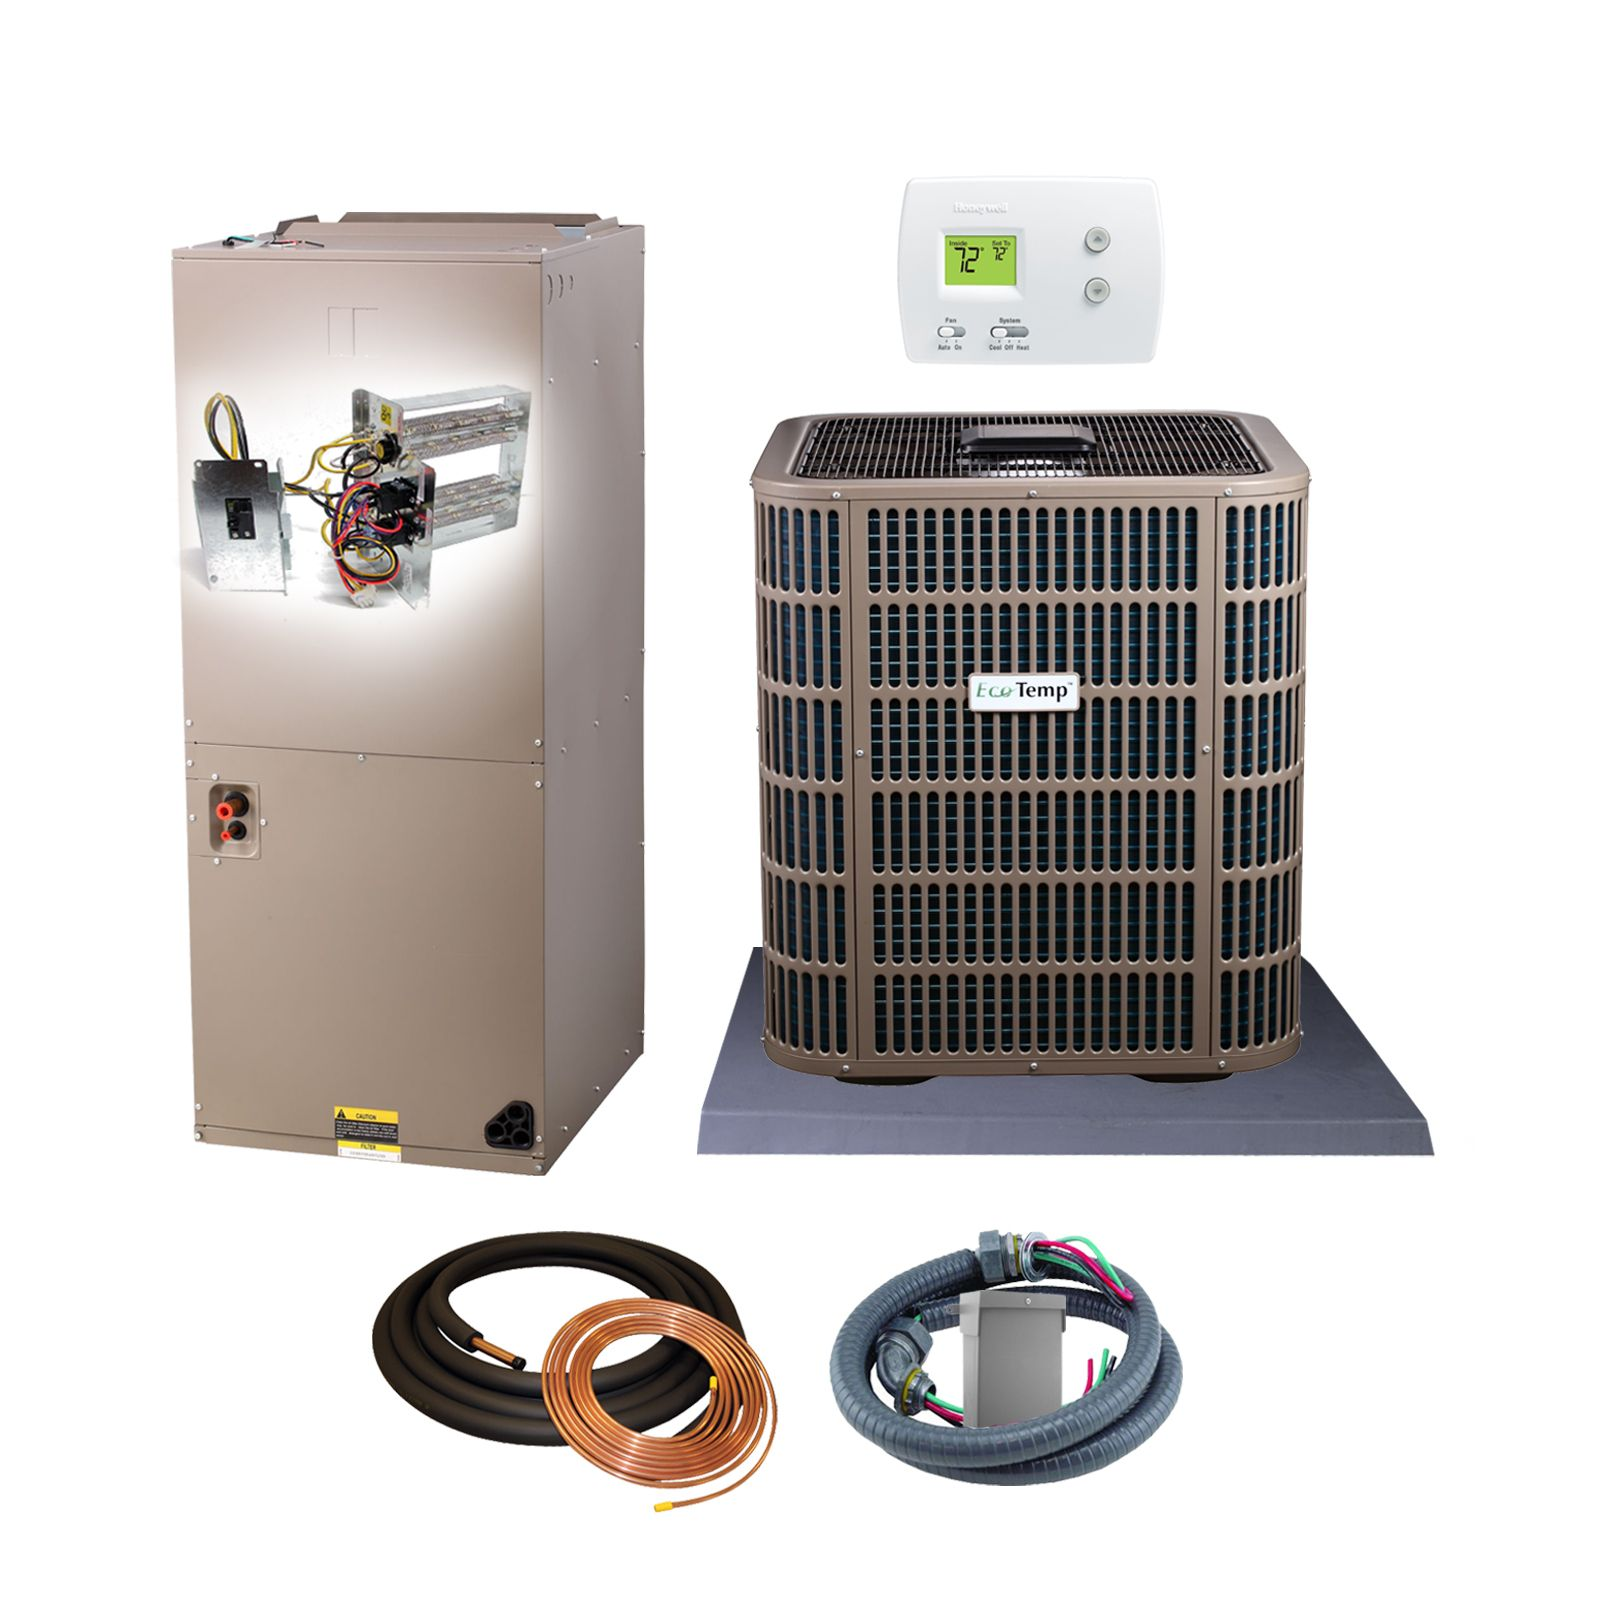 EcoTemp (AHRI 8270070) 2 Ton, 18.5 SEER/13 EER Monarch Series, Heat Pump Split System and Install Kit